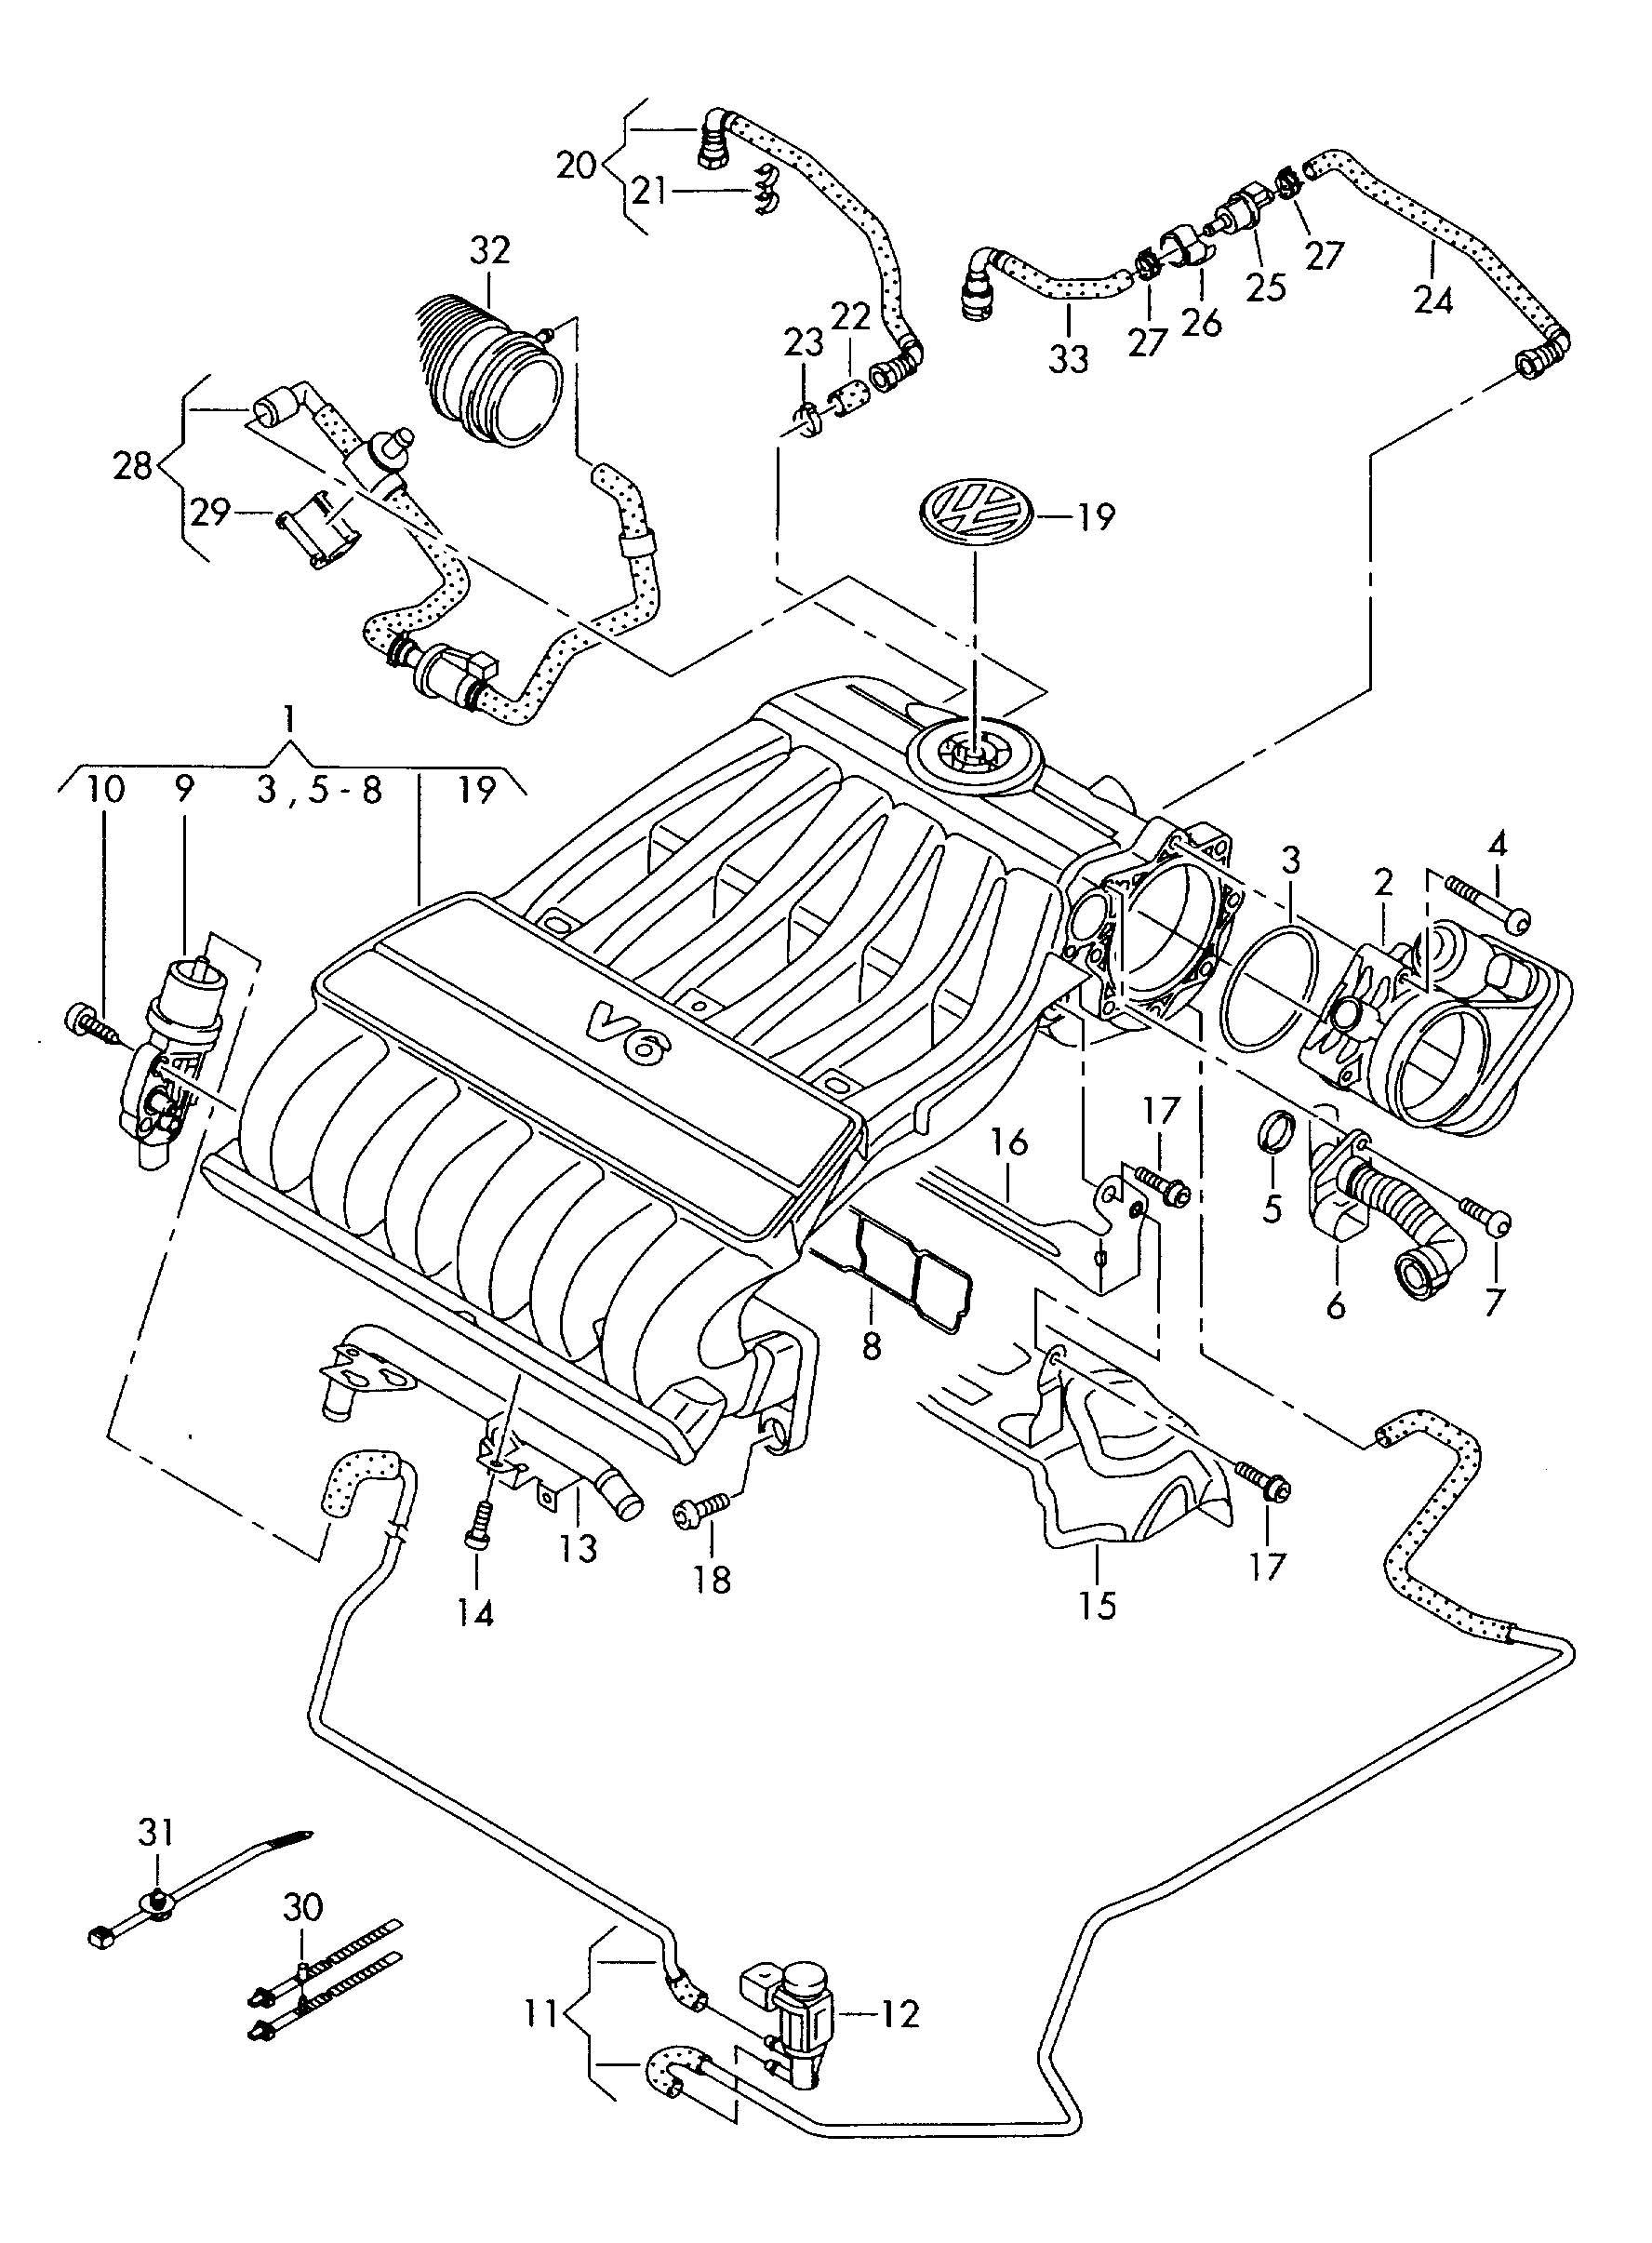 Service manual [2009 Audi Q7 Head Bolt Removal Diagram